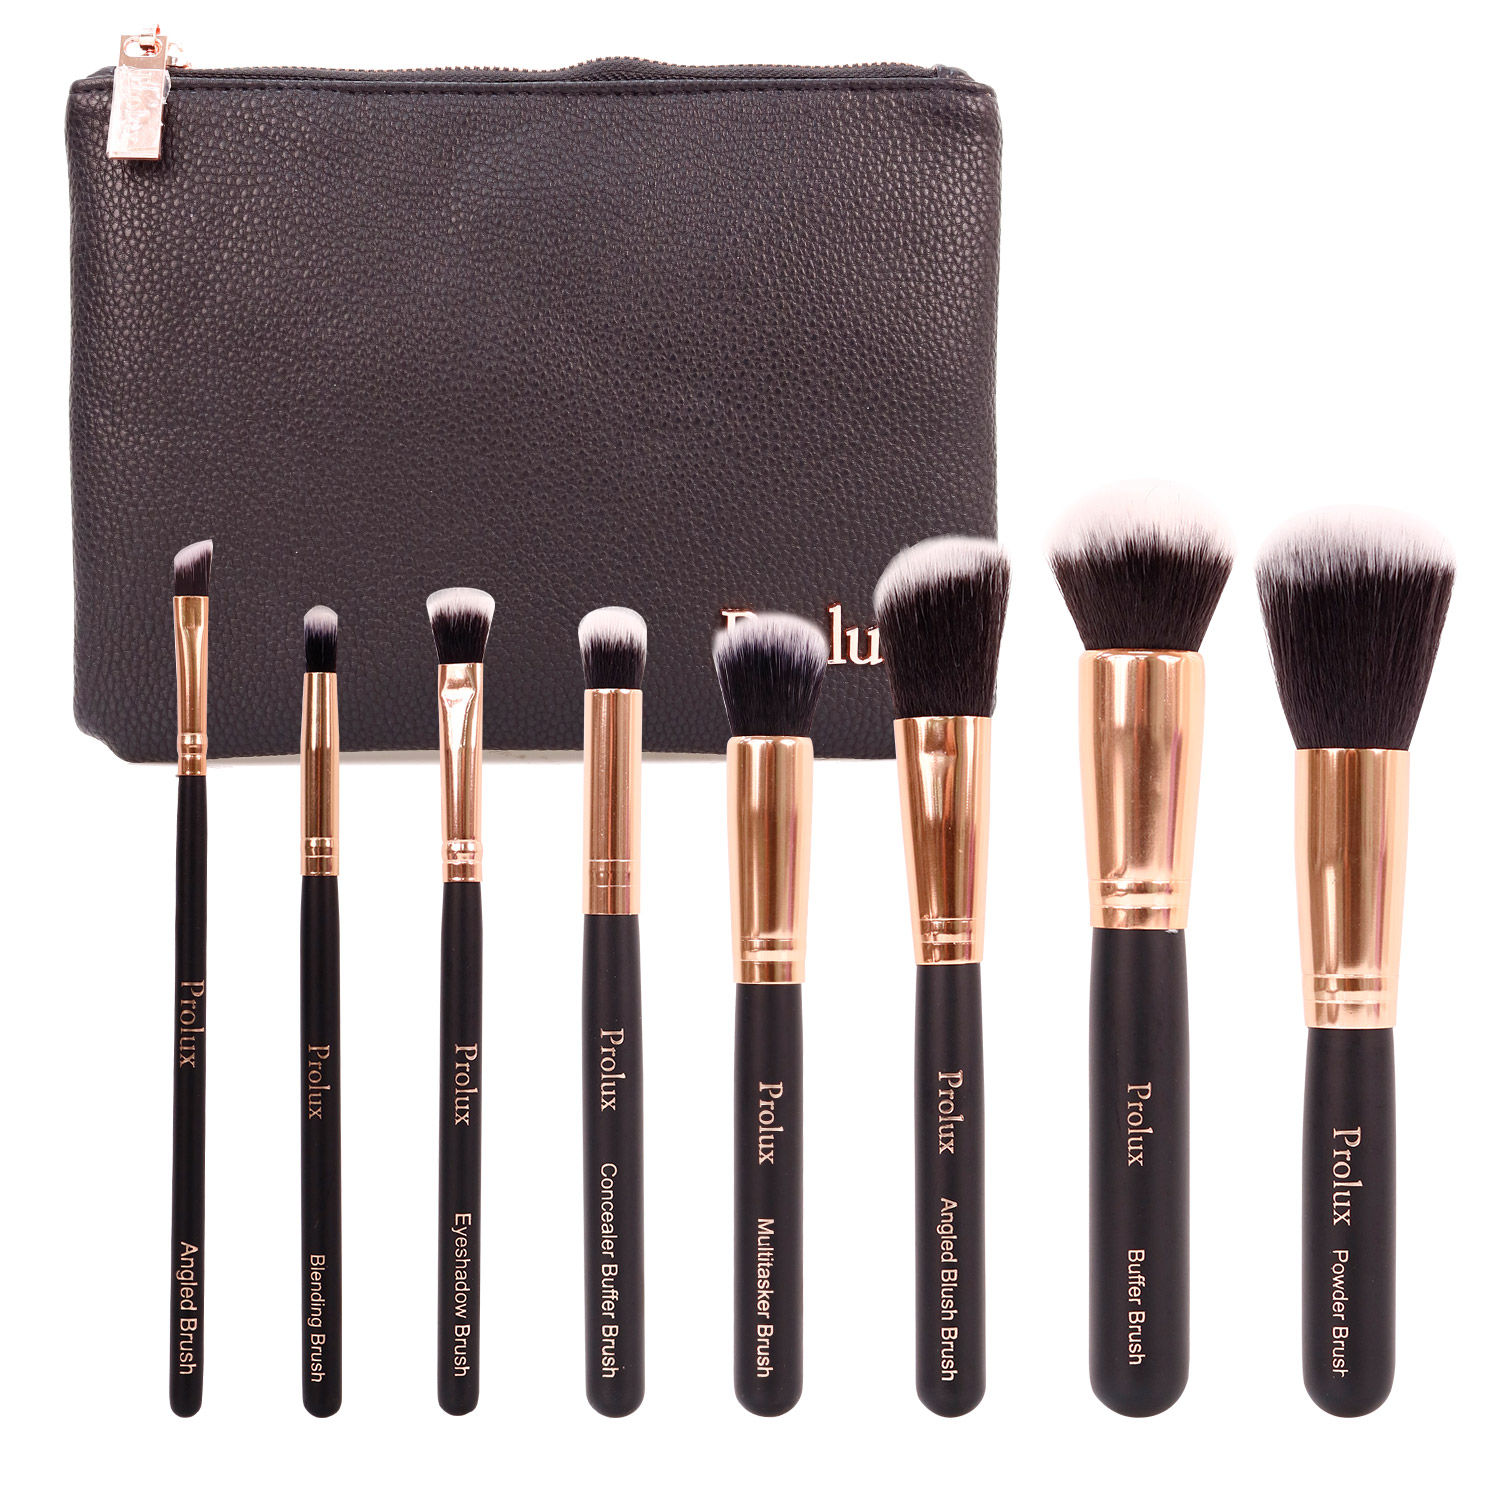 Makeup Brushes Ikatehouse 36 Pcs Professional Cosmetic Facial Wood Make Up Brush Tools Kit Set With Black Leather Case Profusion Deluxe 8 Bag